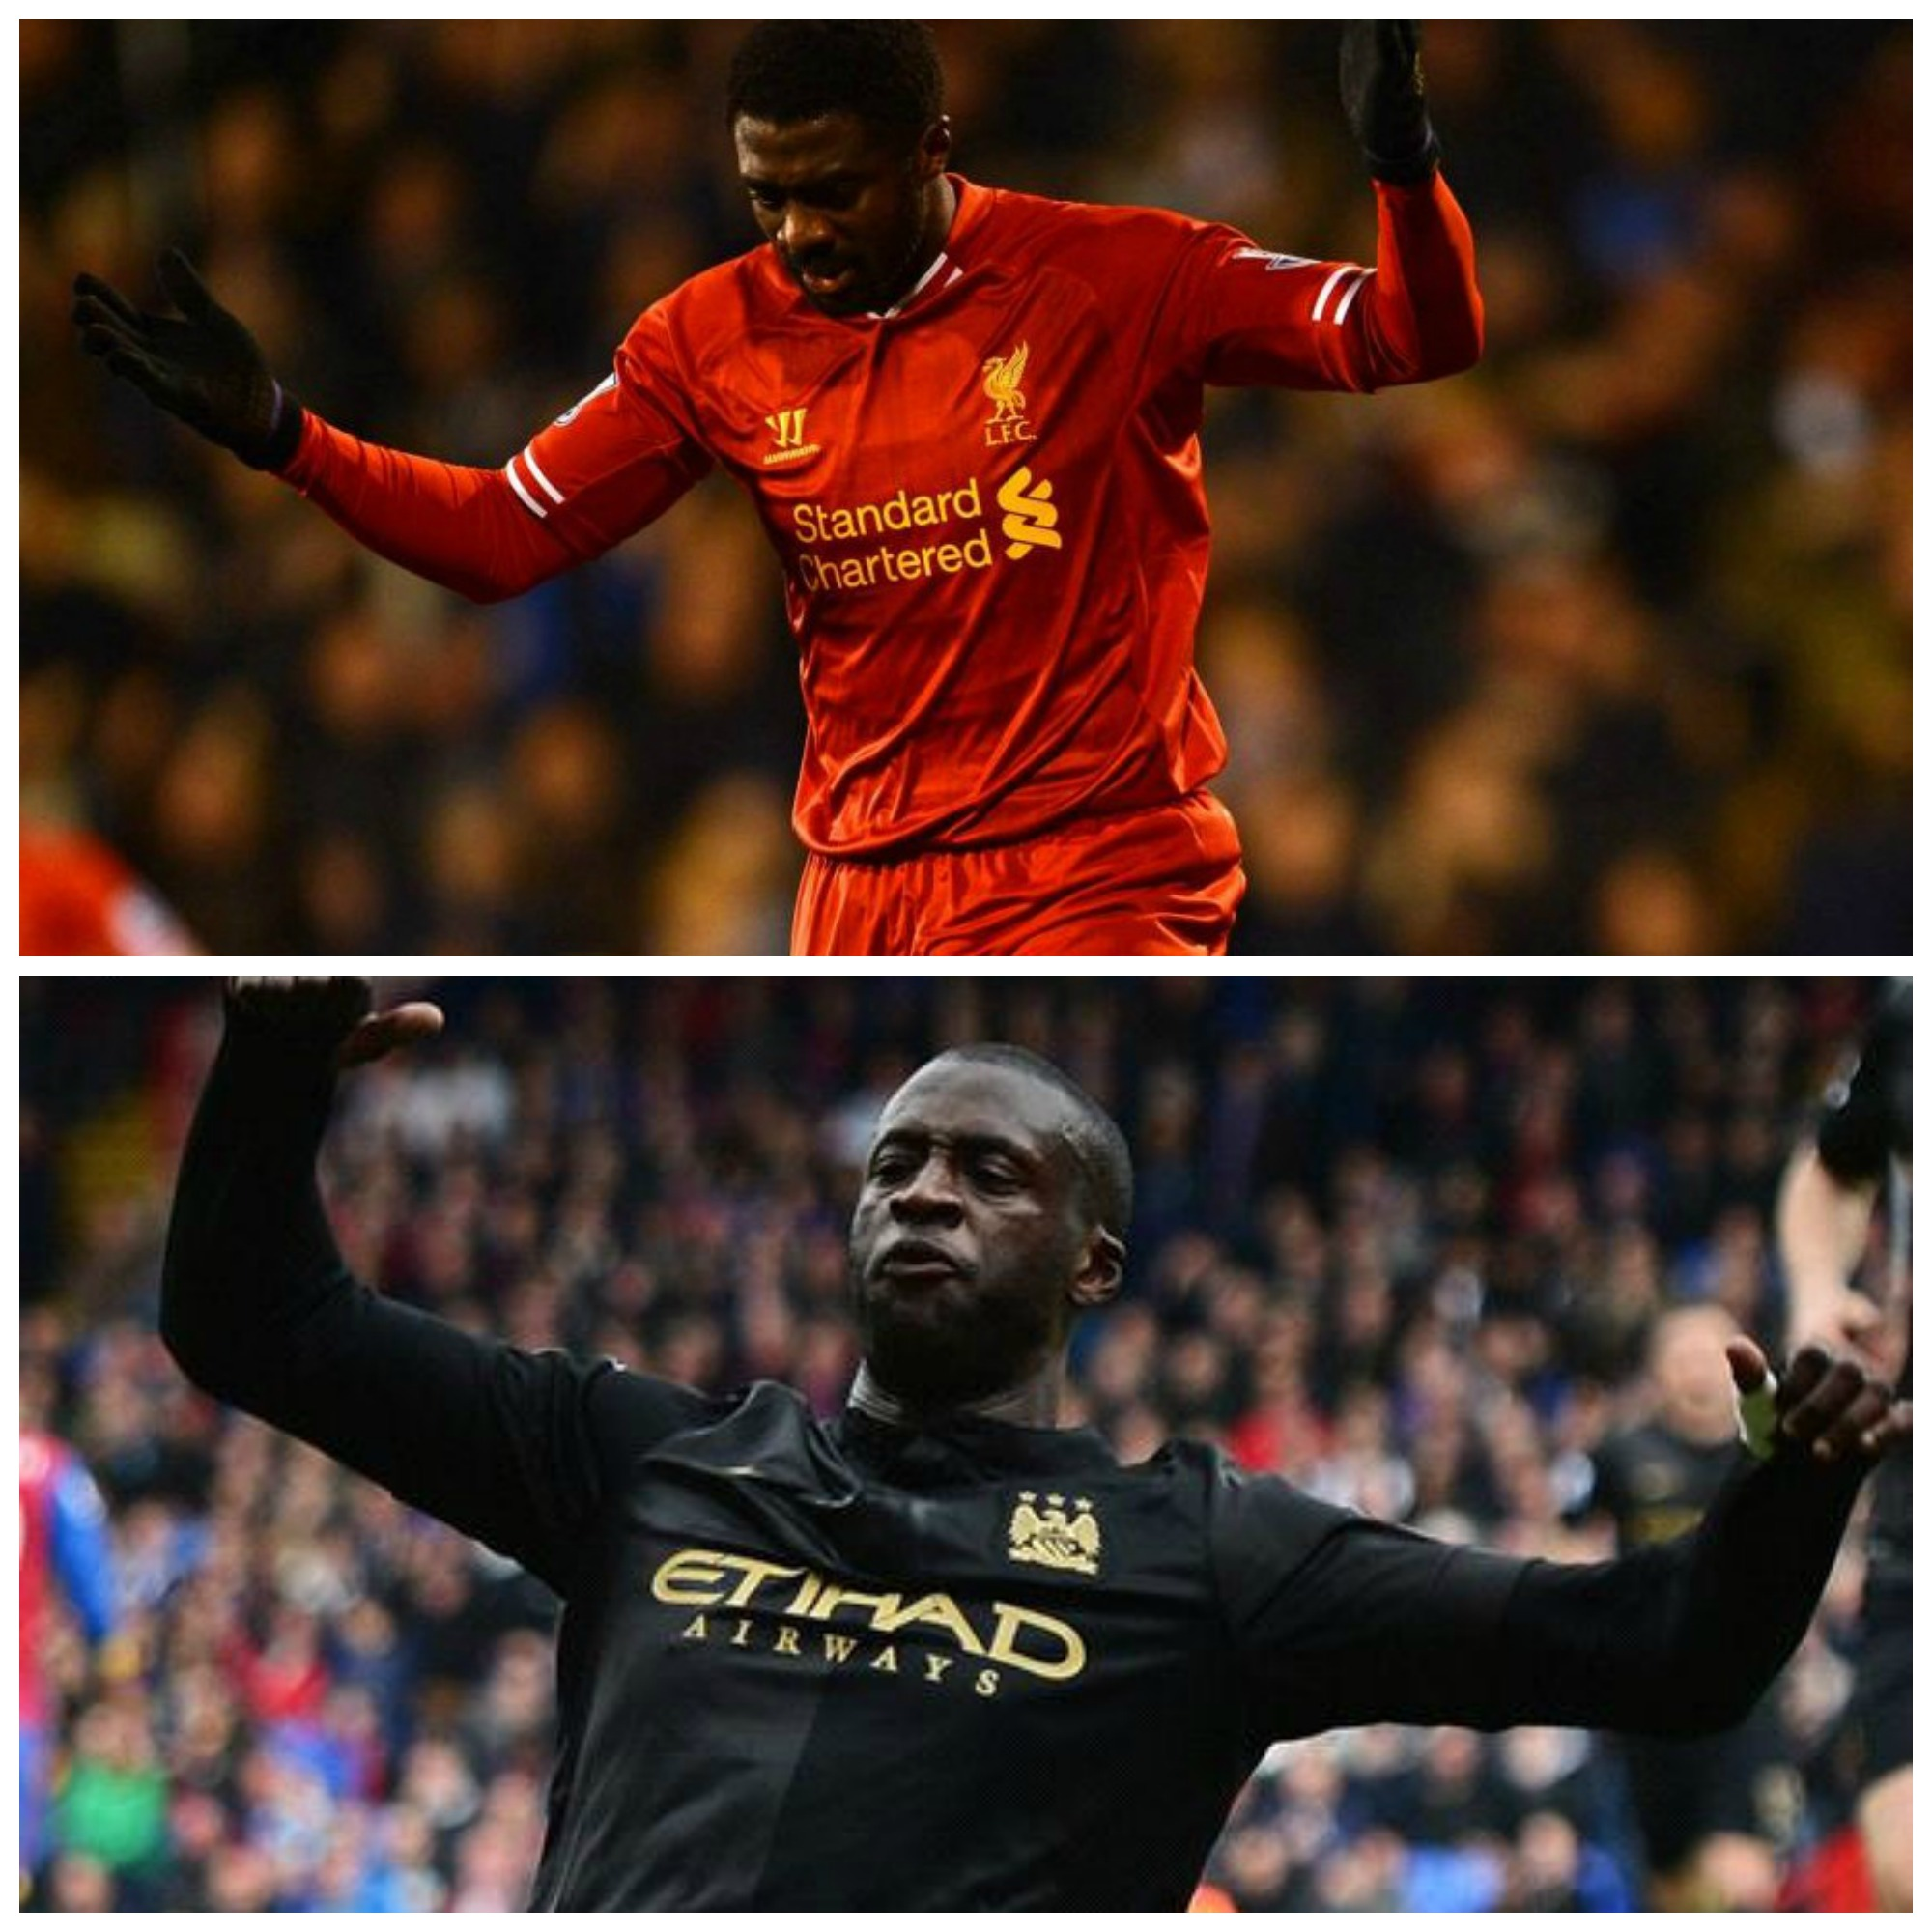 Kolo Toure (top) and Yaya Toure (bottom) are brothers competing in the Premiere League.